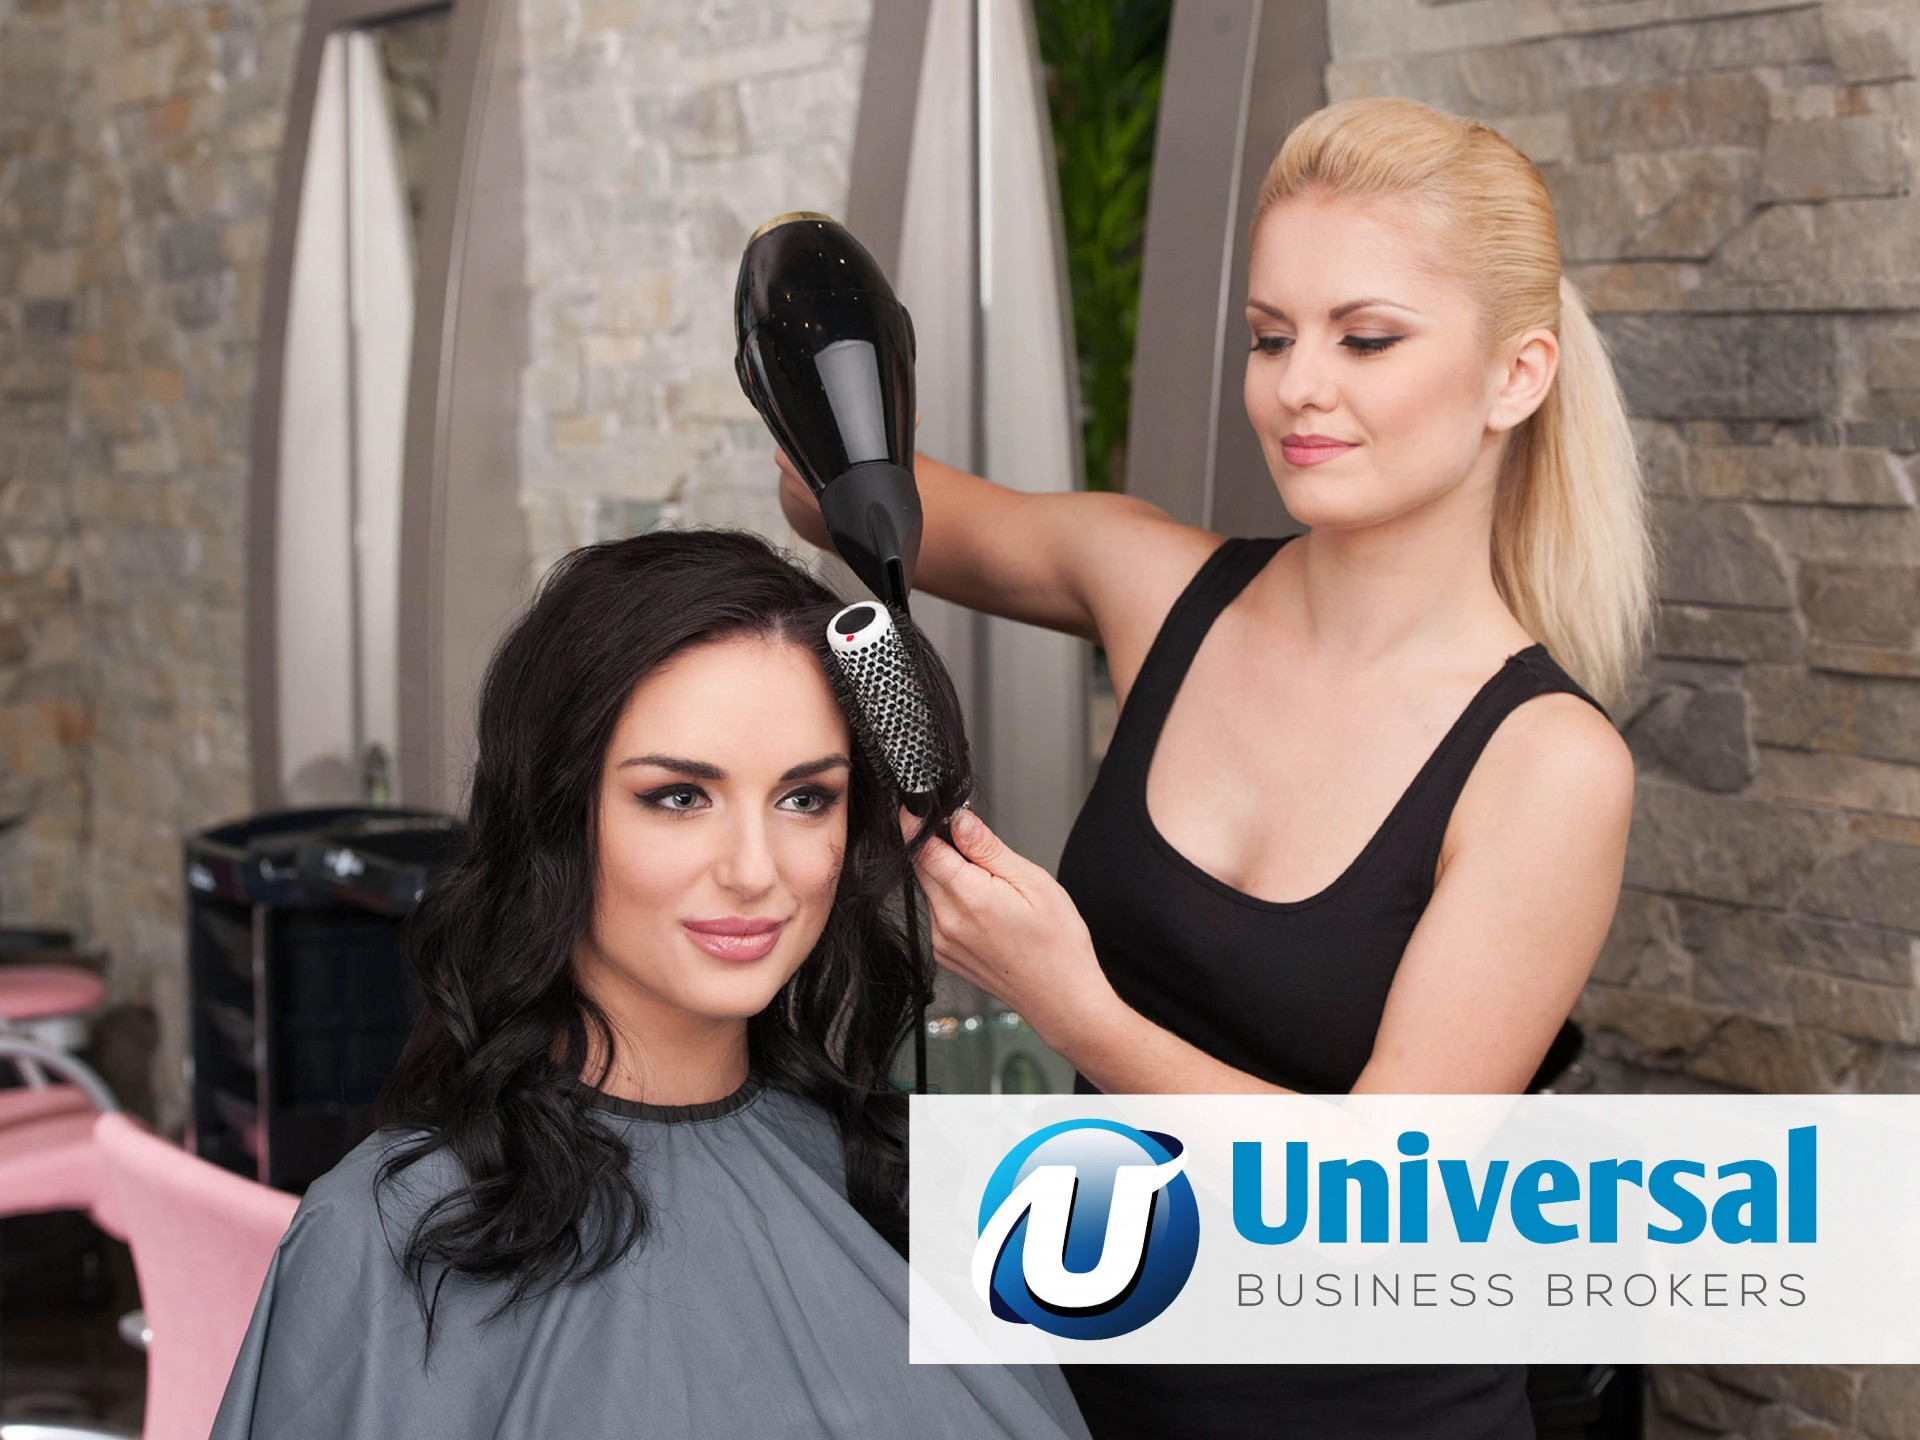 Hair Salon for sale Liverpool